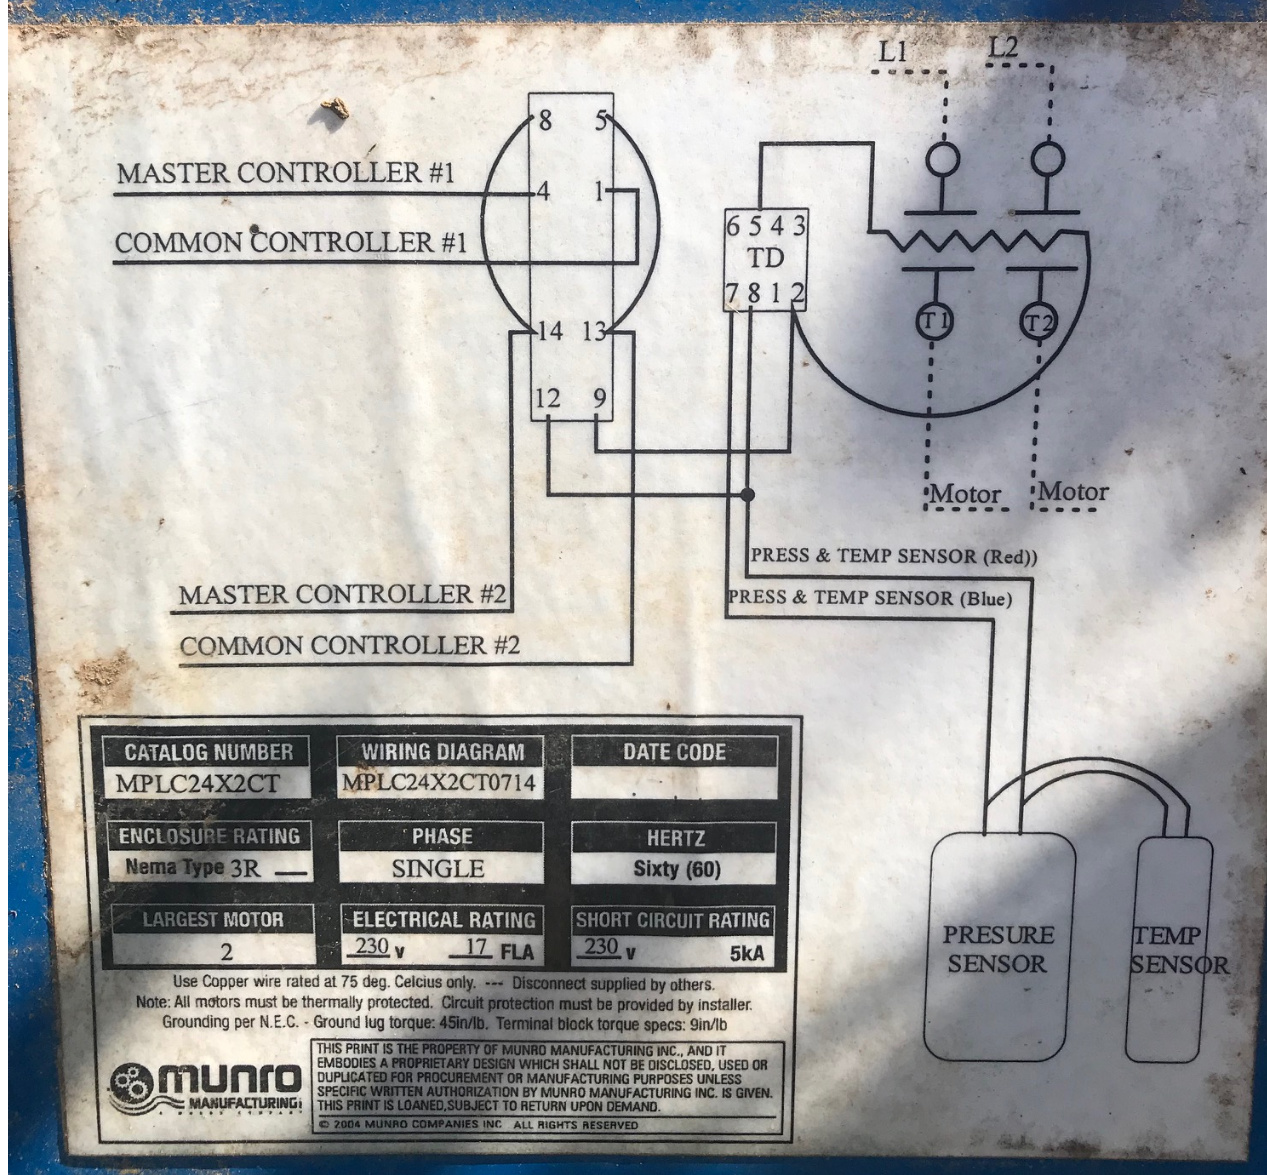 munro smart box wiring diagram 2 controllers with munro smart pump relays does it work  yes no  2 controllers with munro smart pump